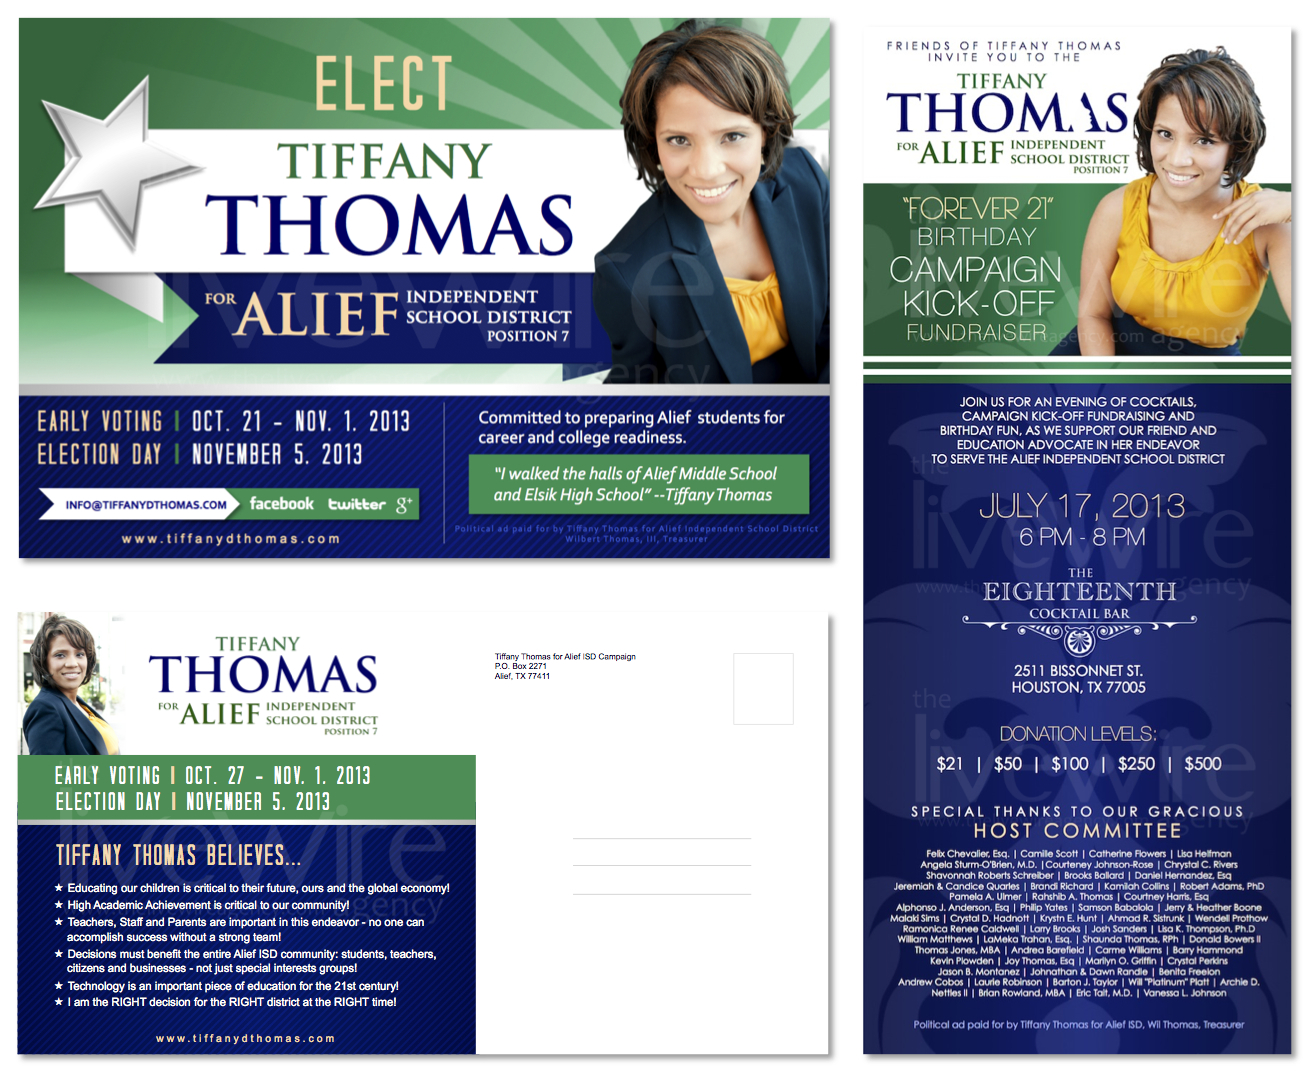 Tiffany Thomas Campaign Marketing